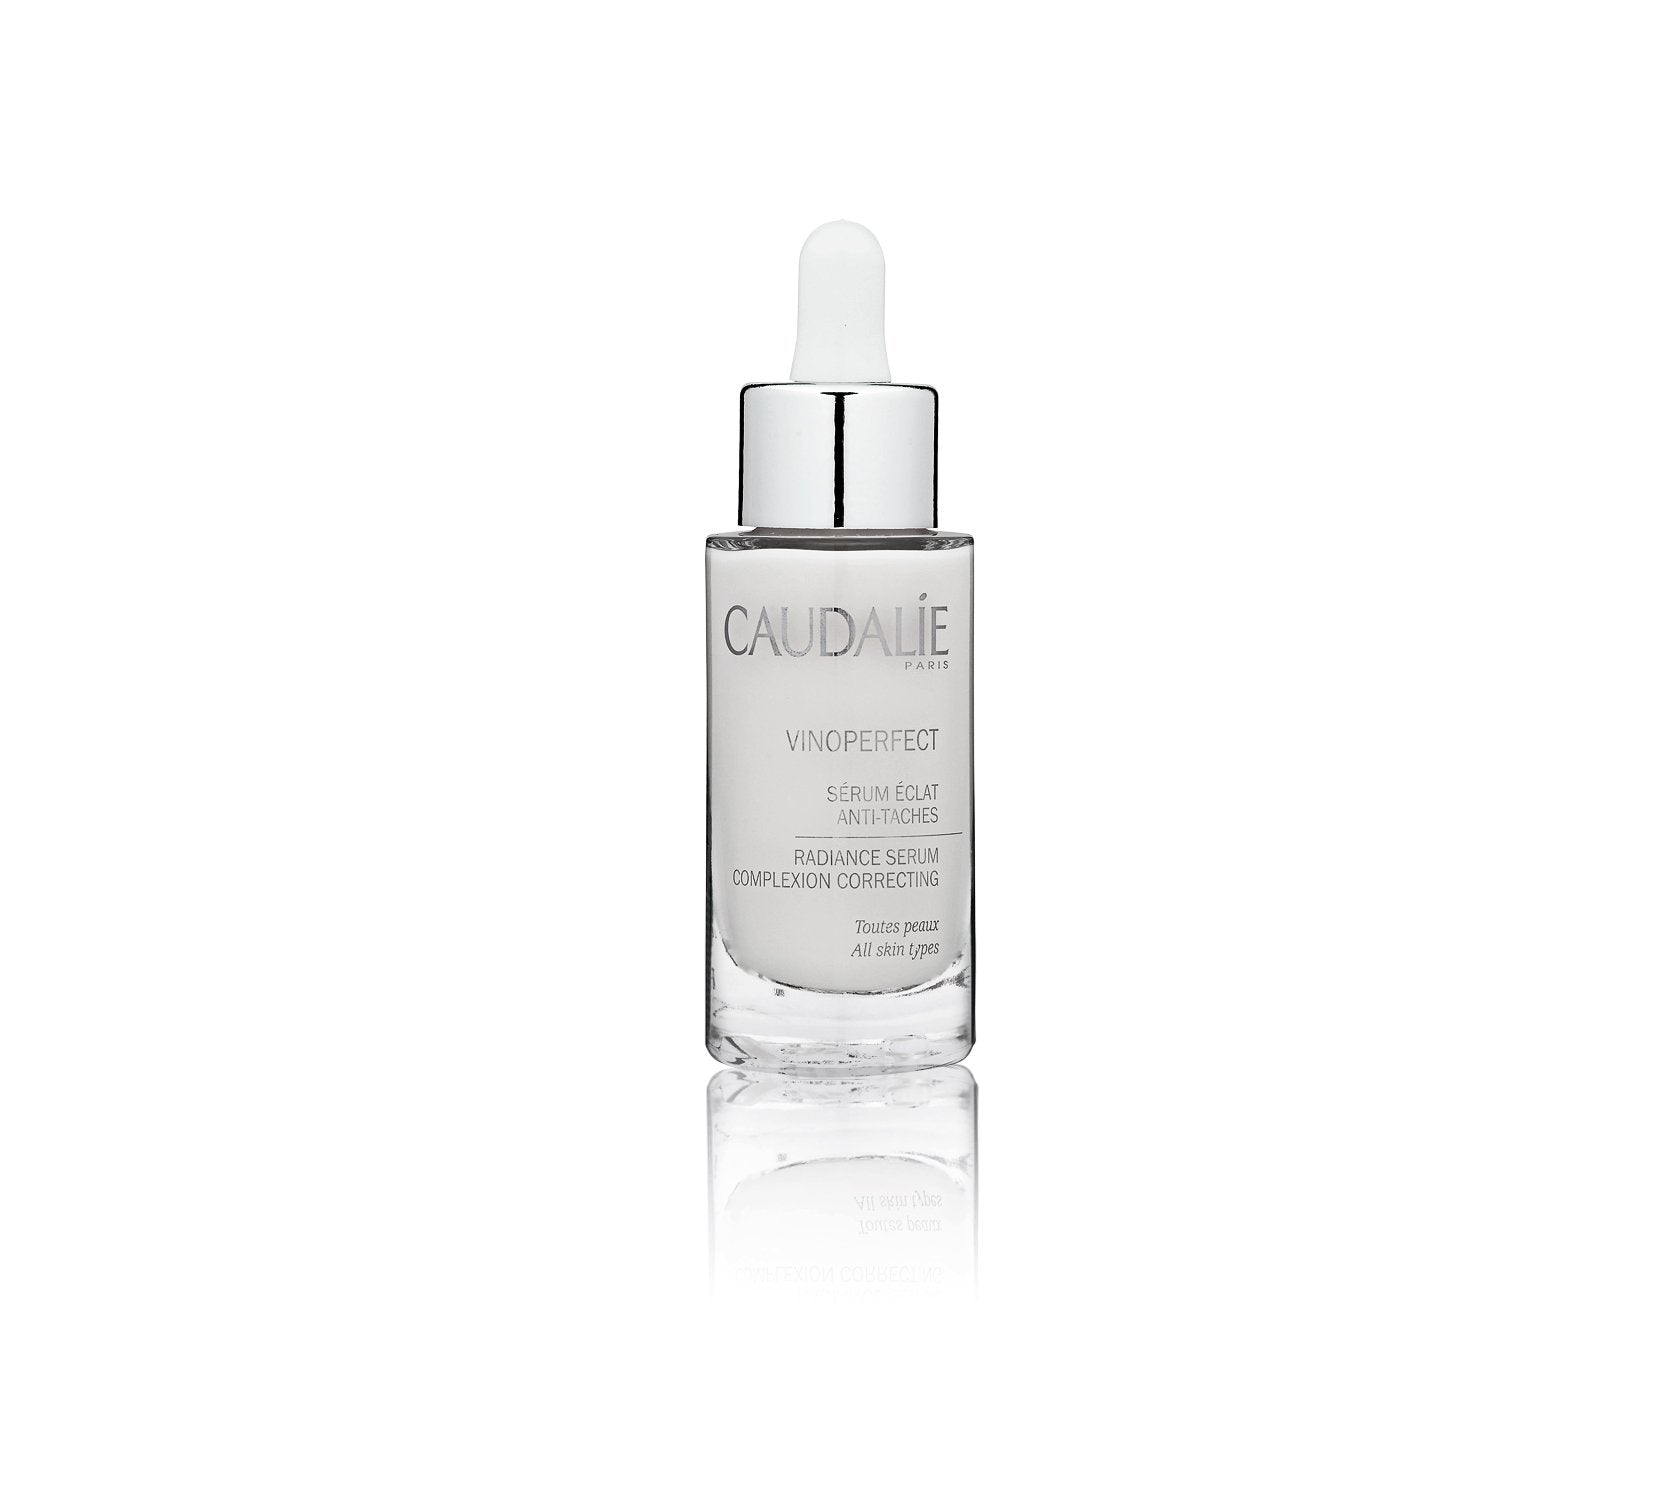 vinoperfect-radiance-serum